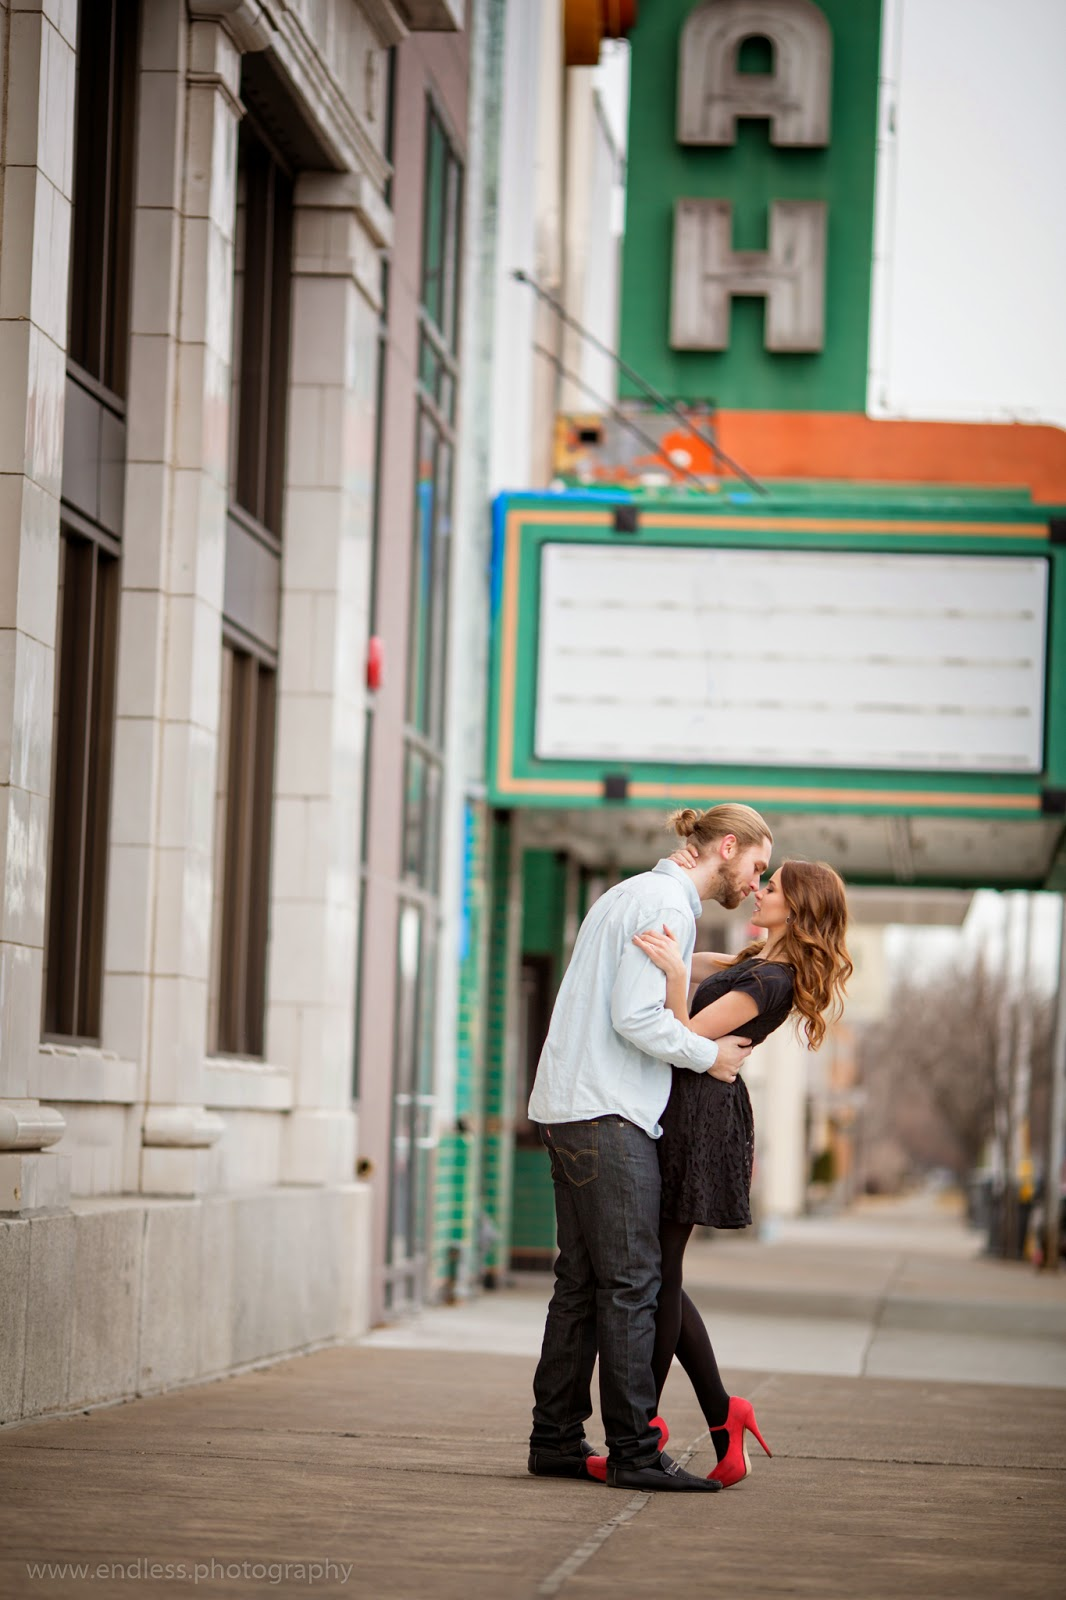 Logan Photographers, Logan, Utah, Weddings, Couples, Engagements, Urban, Beautiful, Ideas, Cute, Classy